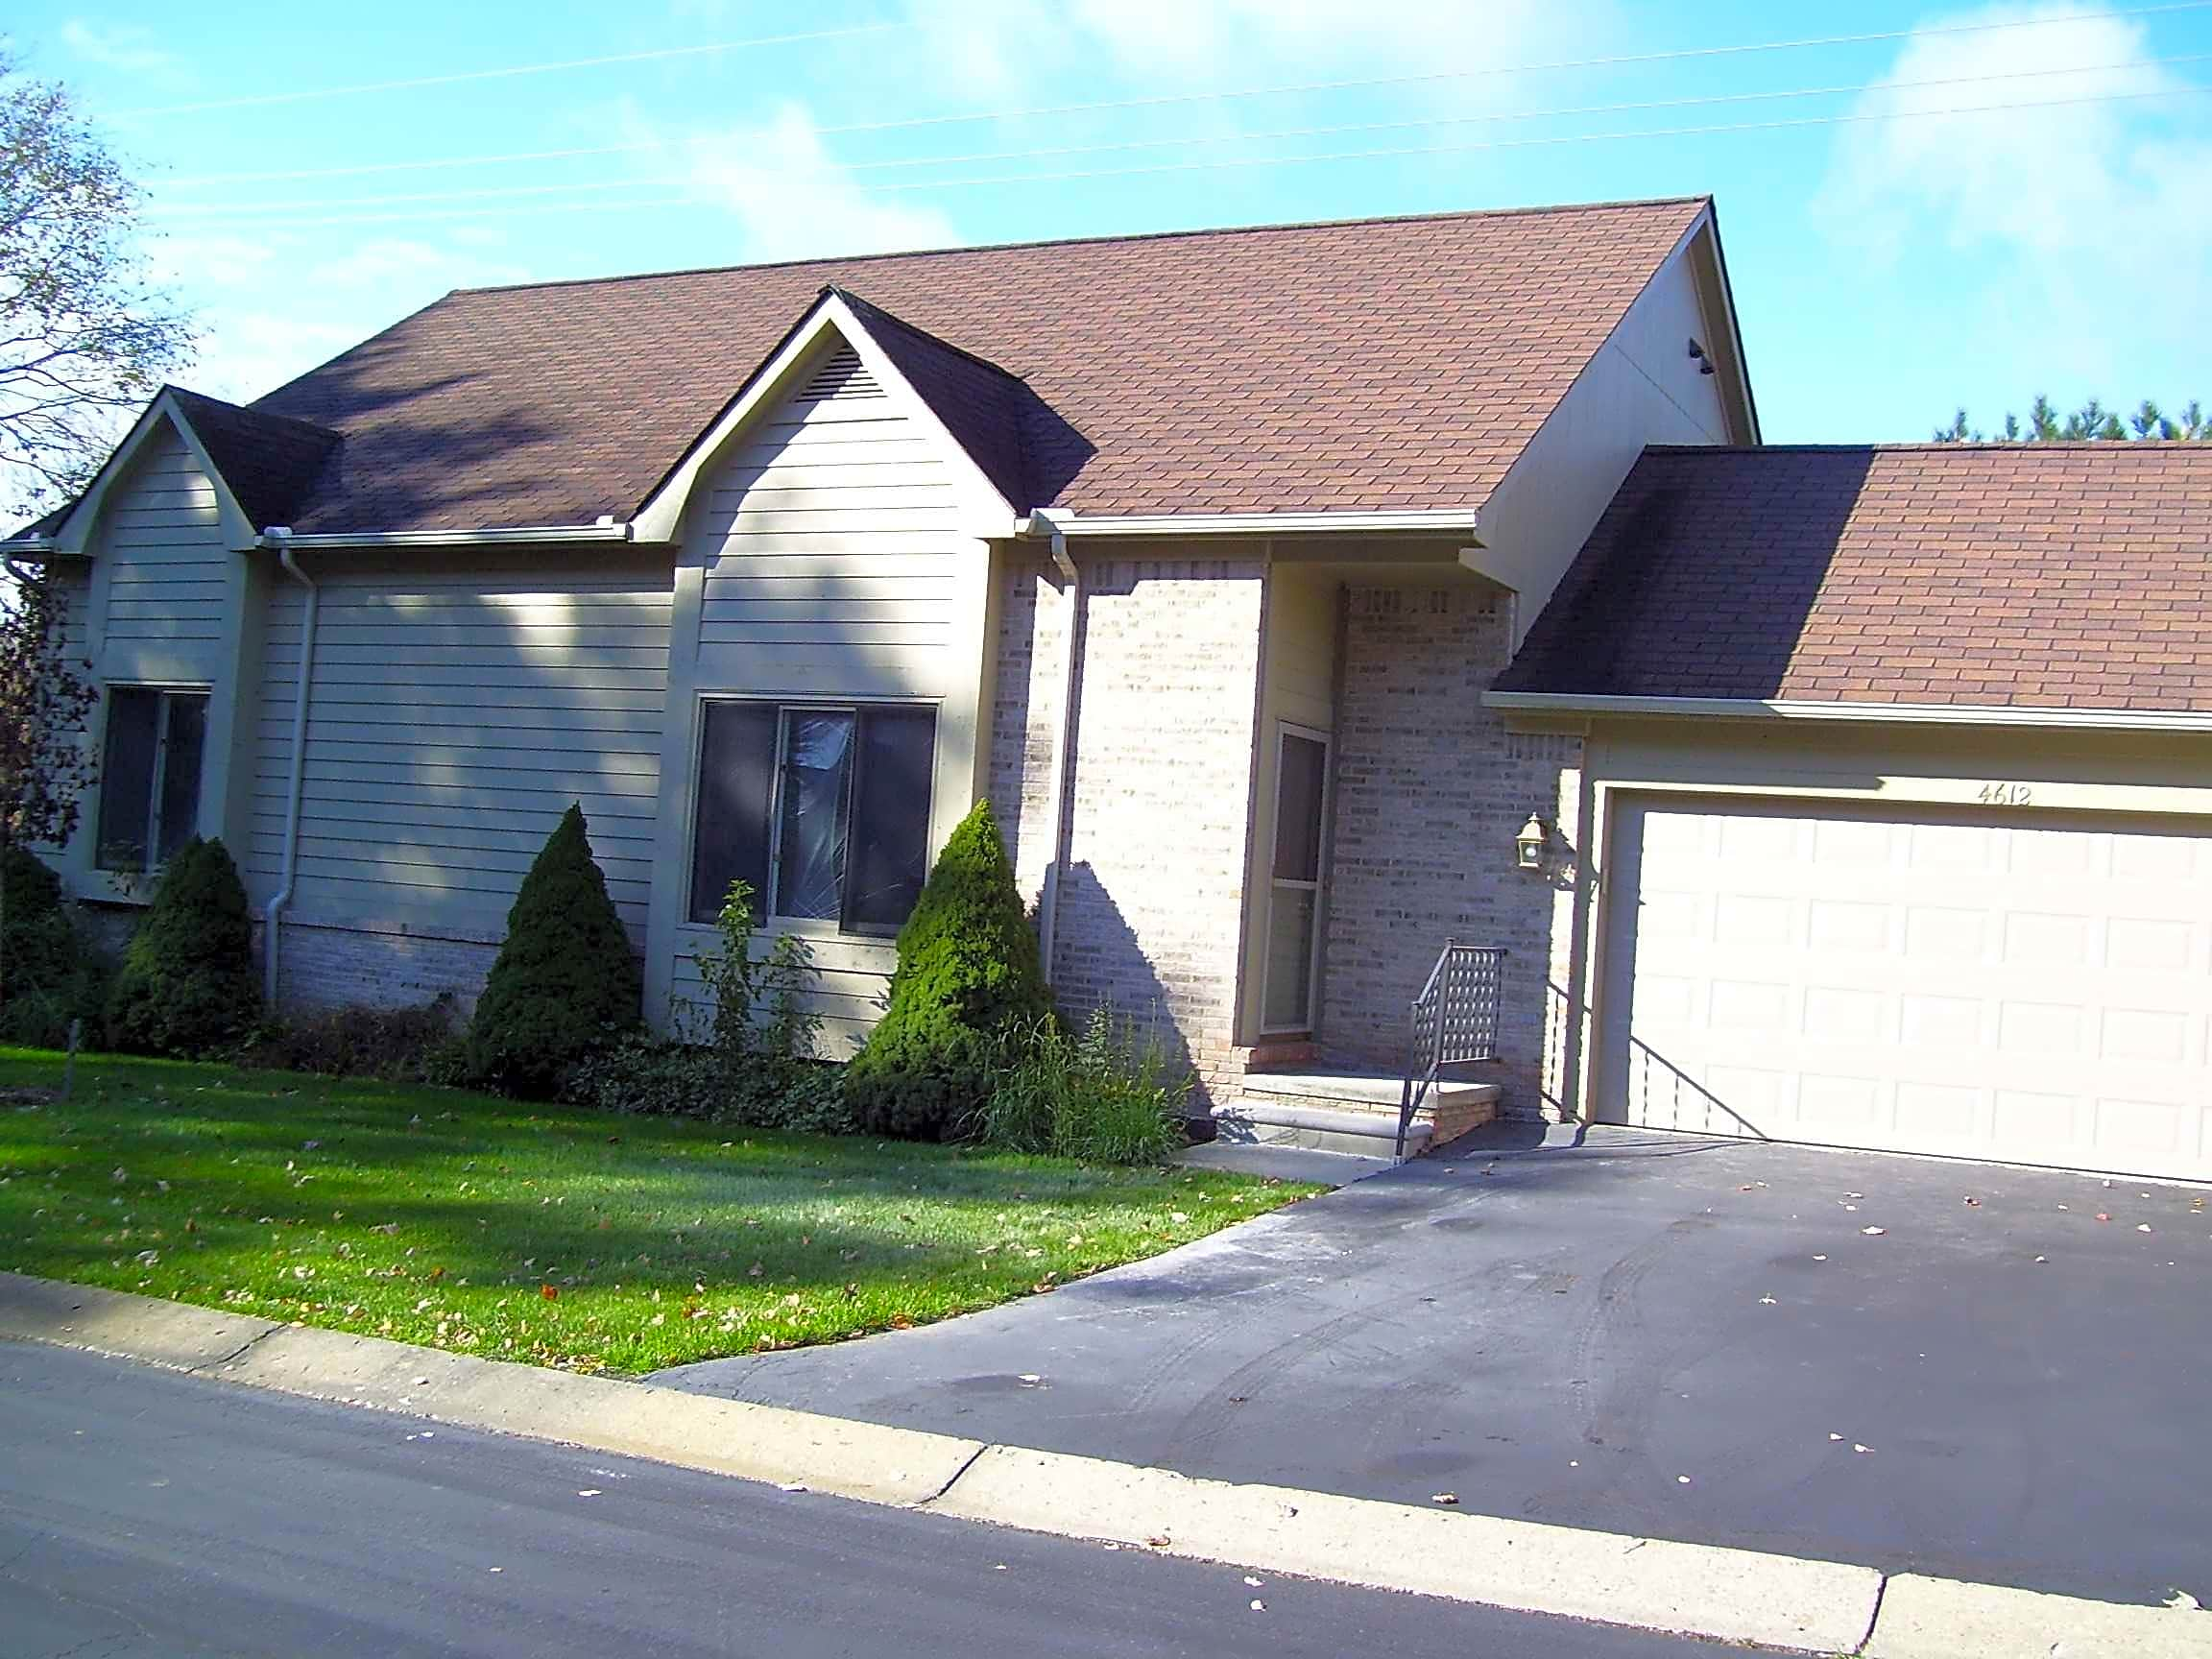 Condo for Rent in Commerce Township